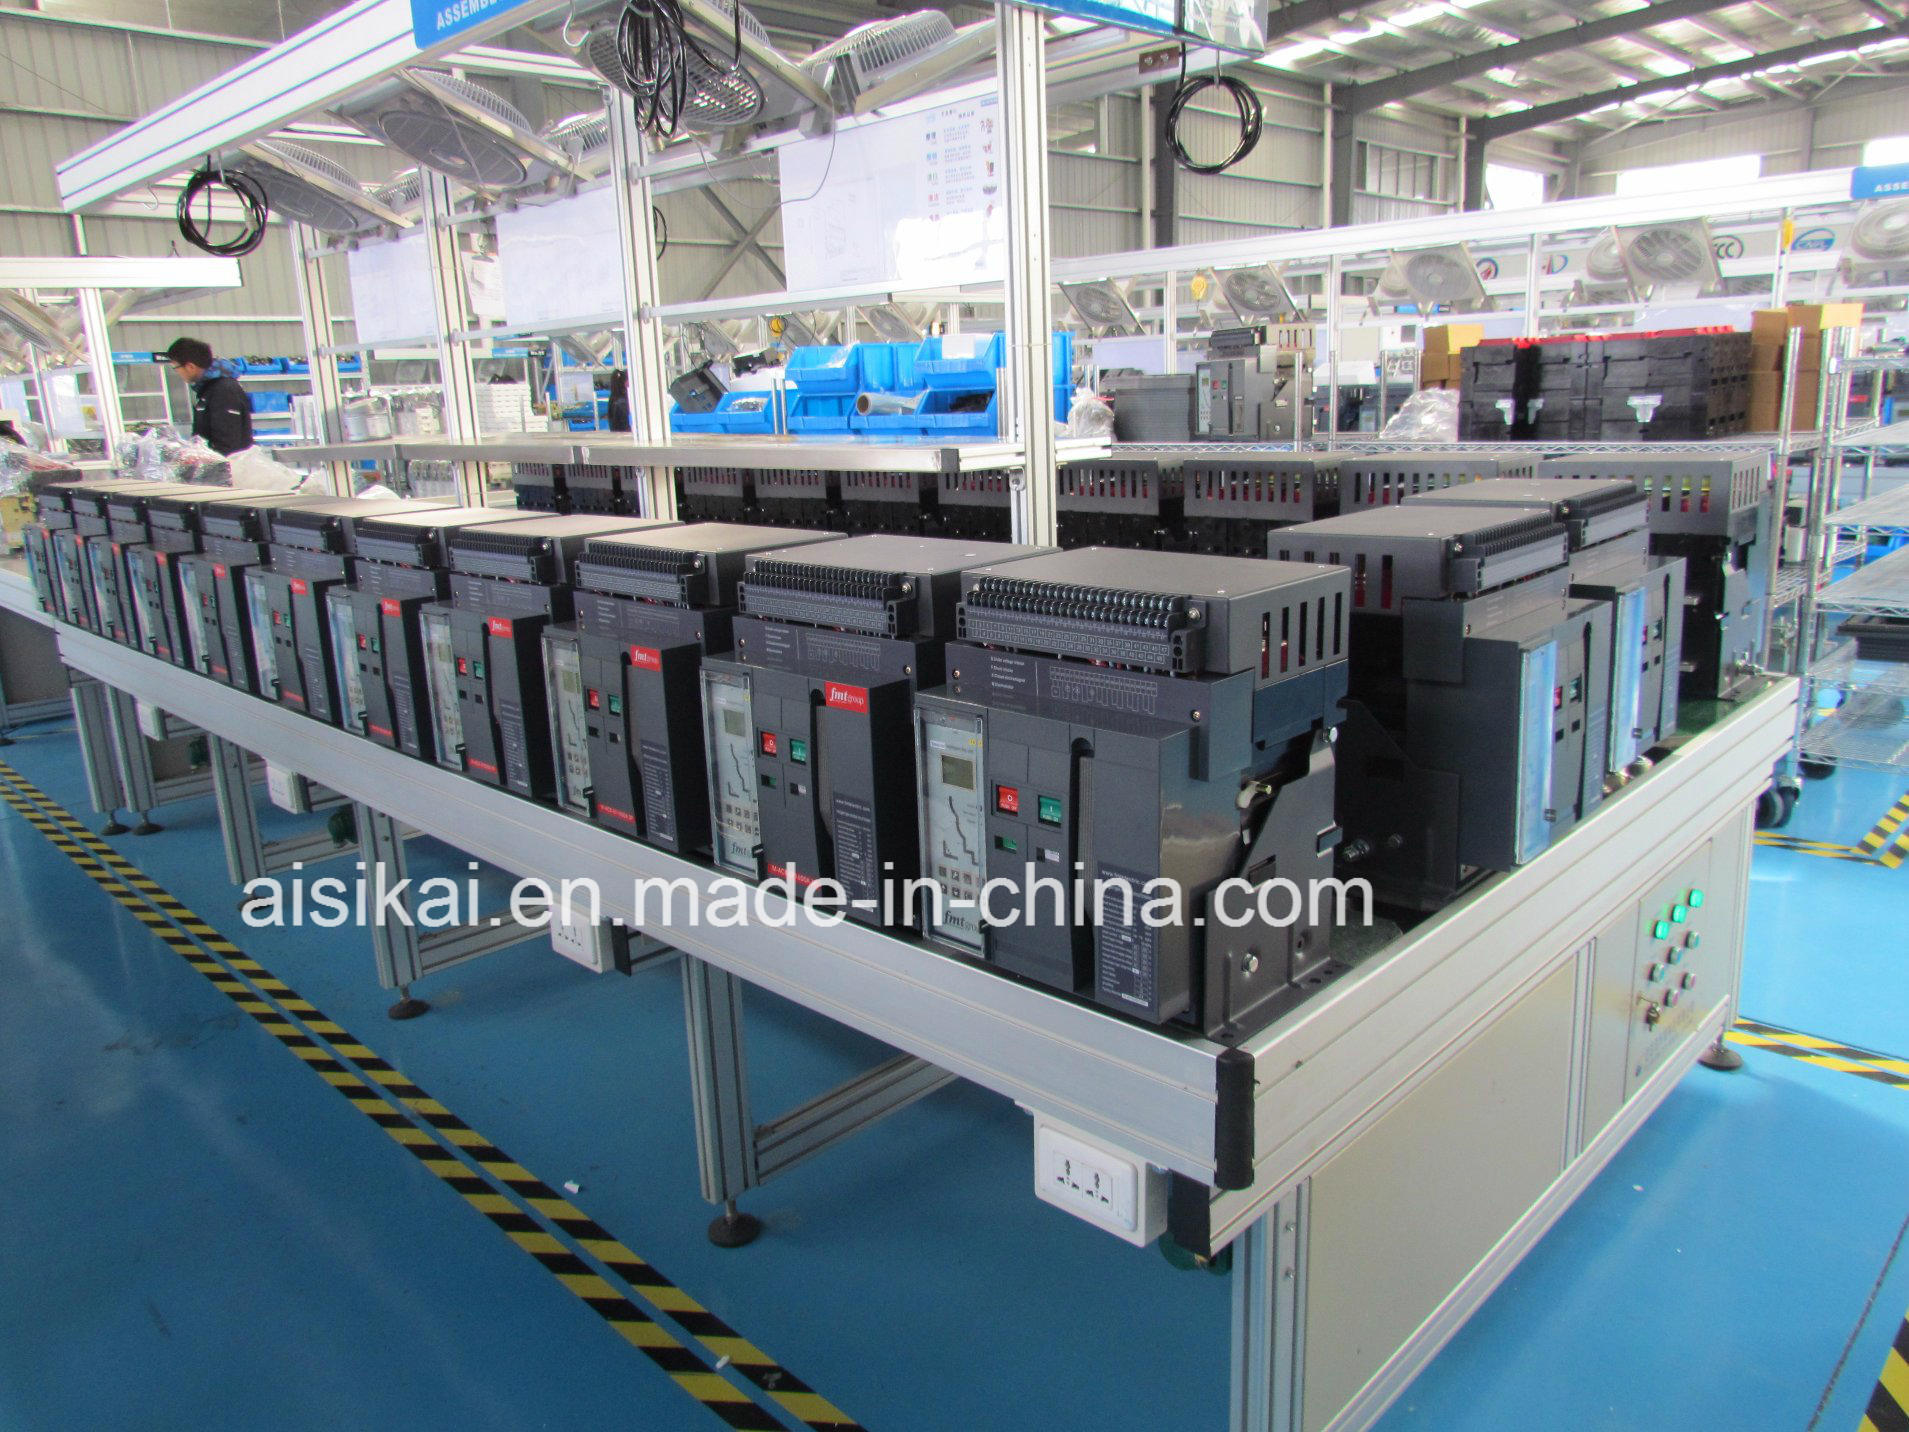 China Askw1 1000a 3p Fixed Typedrawer Type Circuit Breaker For Generator Set And Cabinet